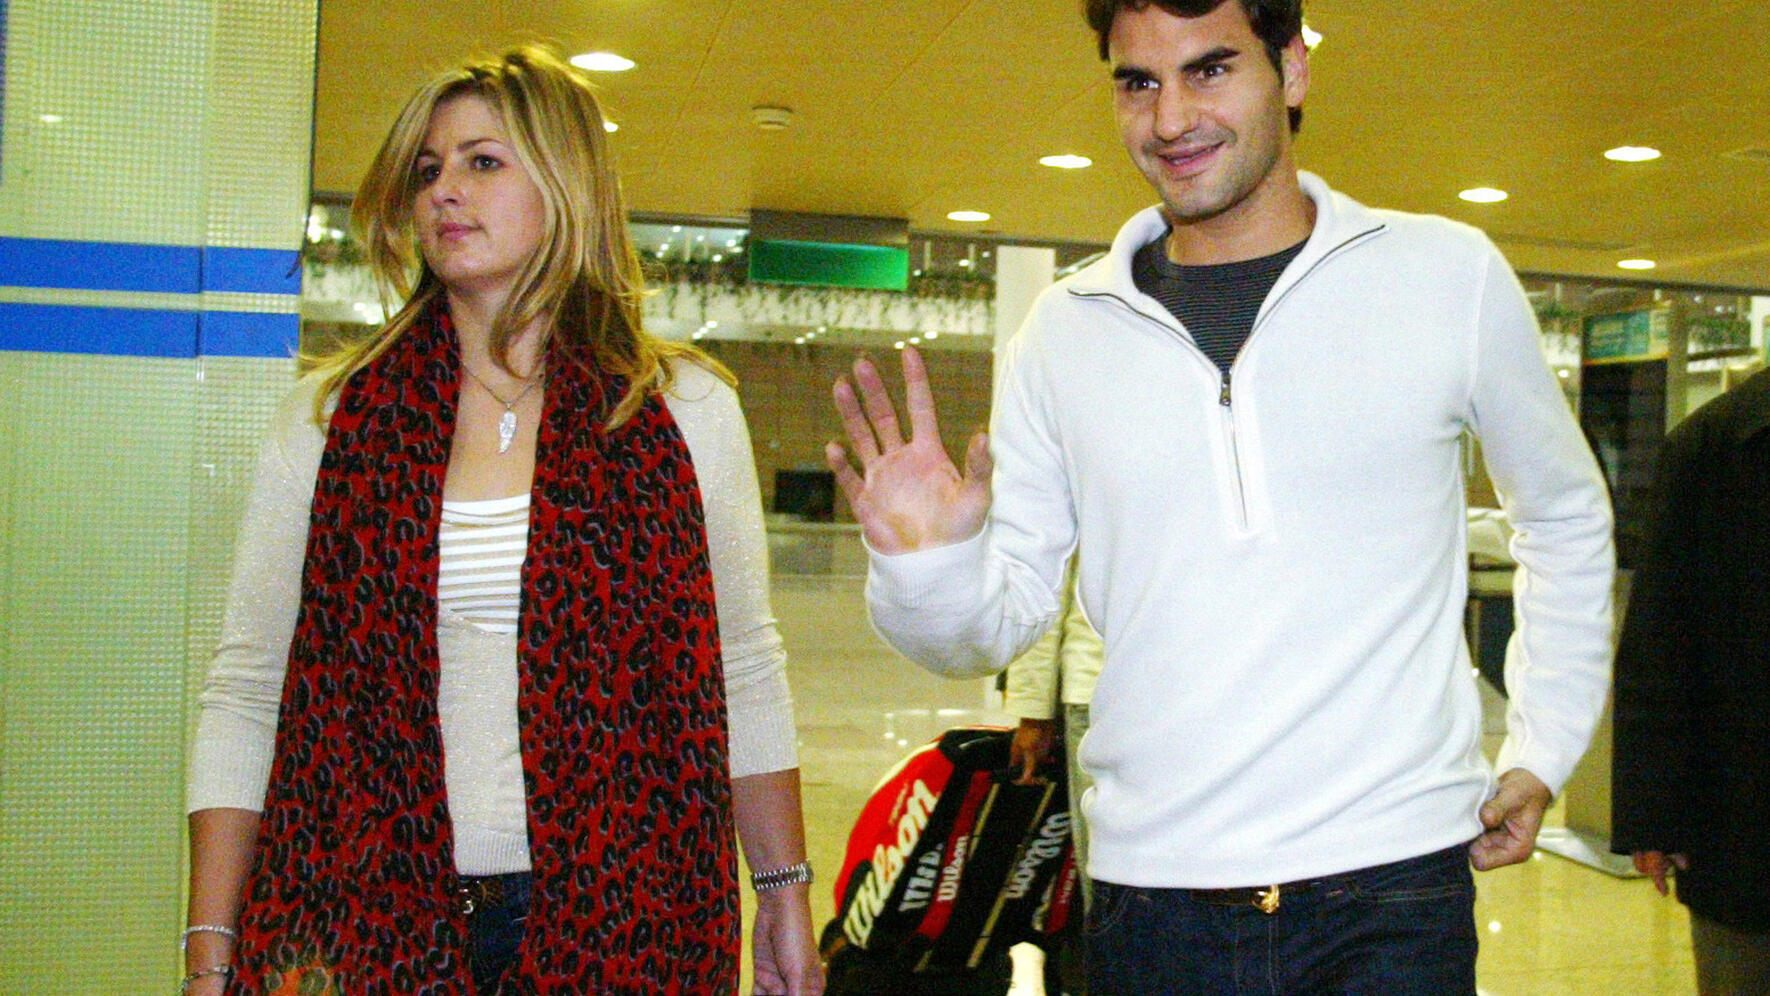 Switzerland's Roger Federer and his girlfriend Mirka Vavrinec